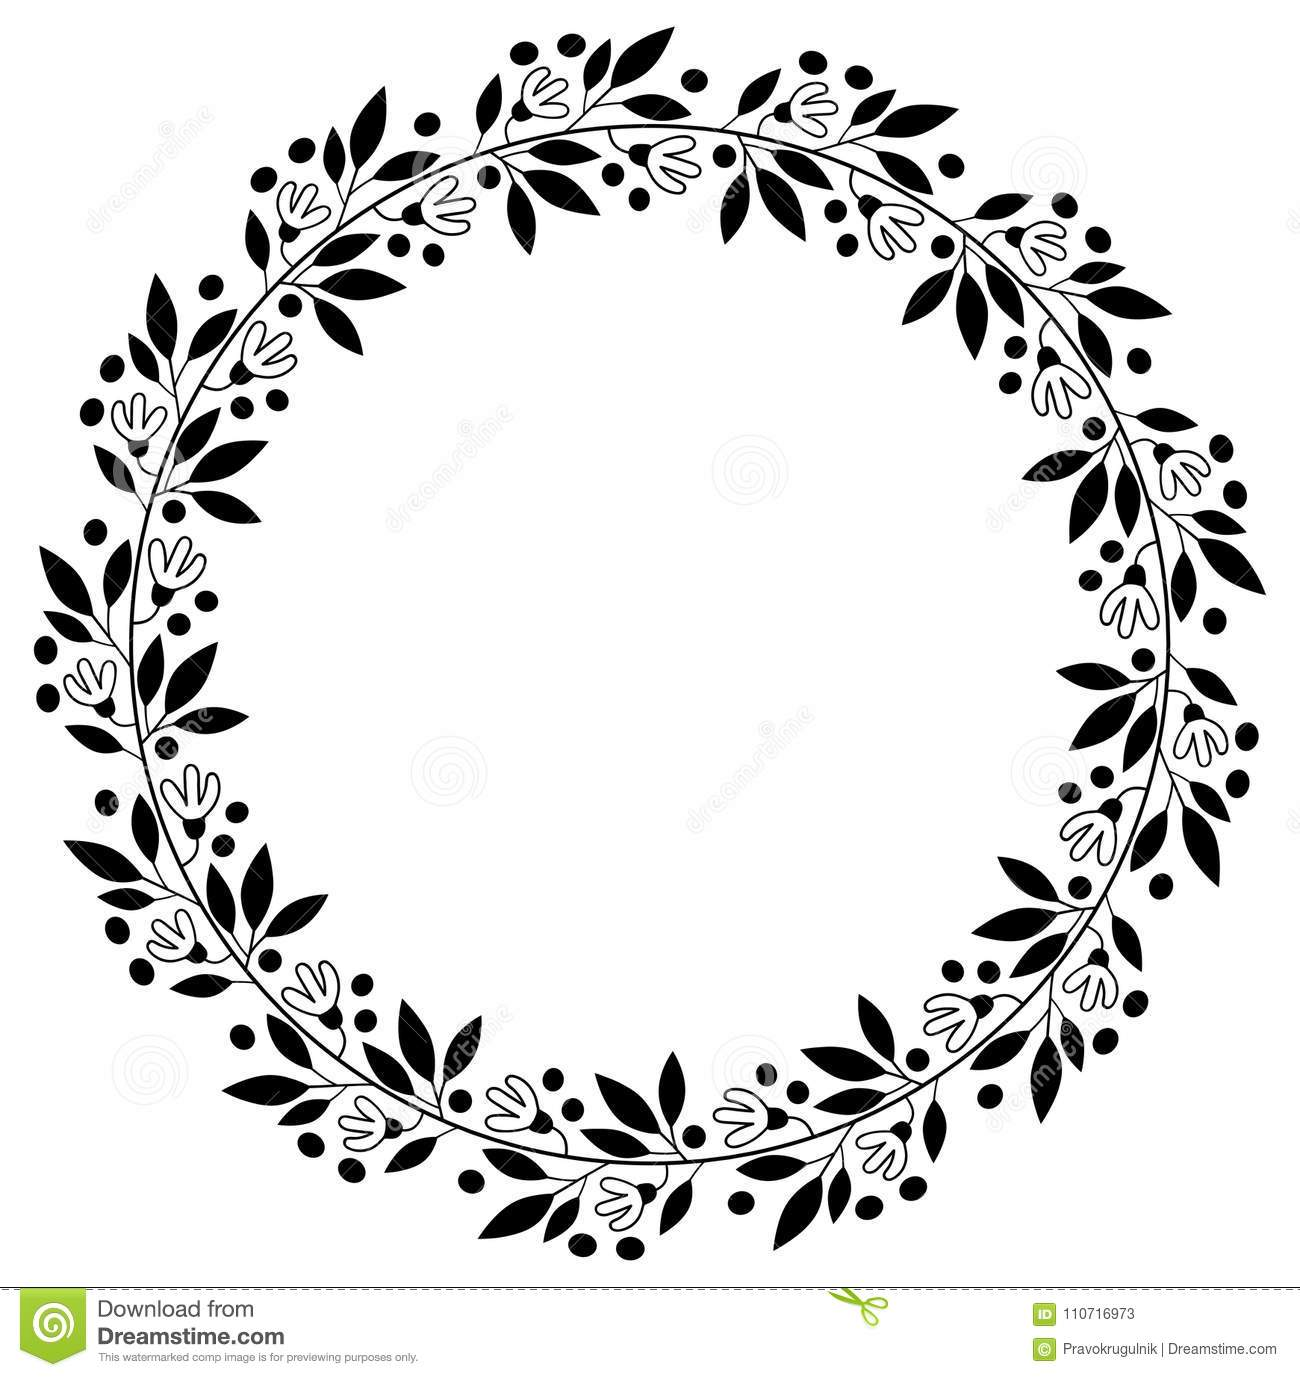 Black floral border for graphic design stock vector illustration download black floral border for graphic design stock vector illustration of hand flower mightylinksfo